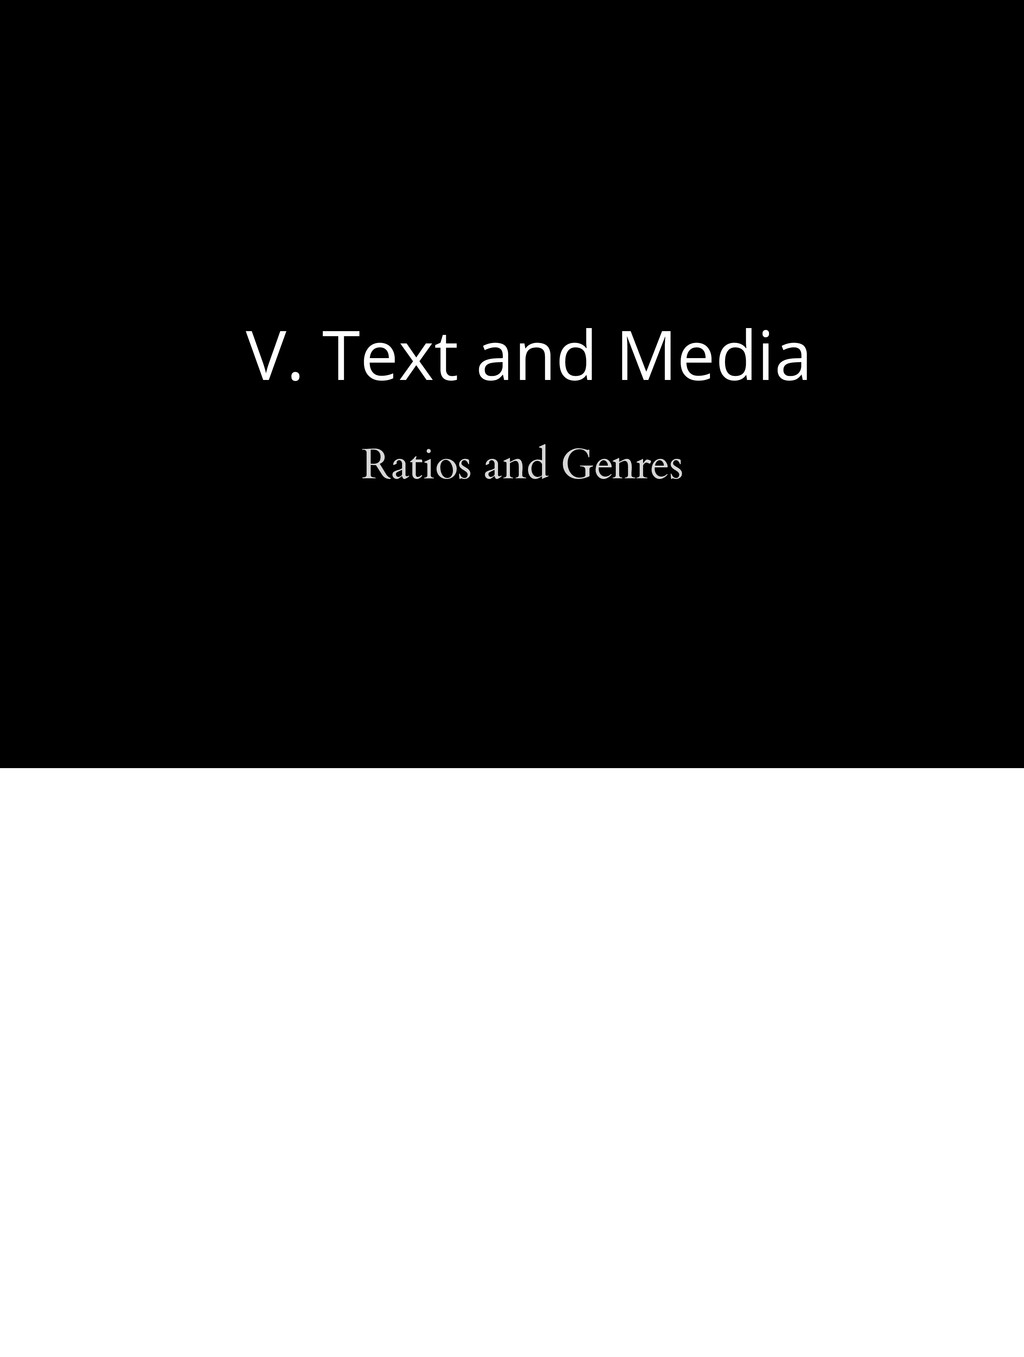 V. Text and Media Ratios and Genres